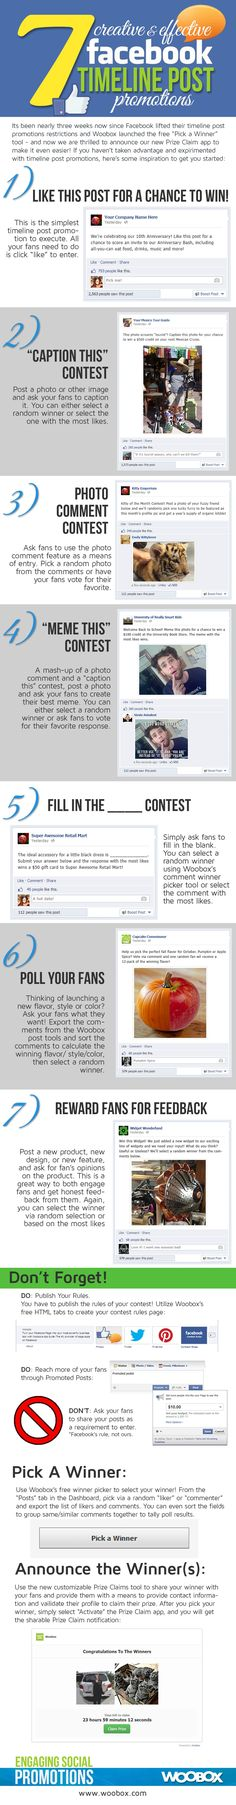 7 Creative & Effective #Facebook Timeline Post Promotions [INFOGRAPHIC] By www.riddsnetwork.in/contact  (Indian SEO)